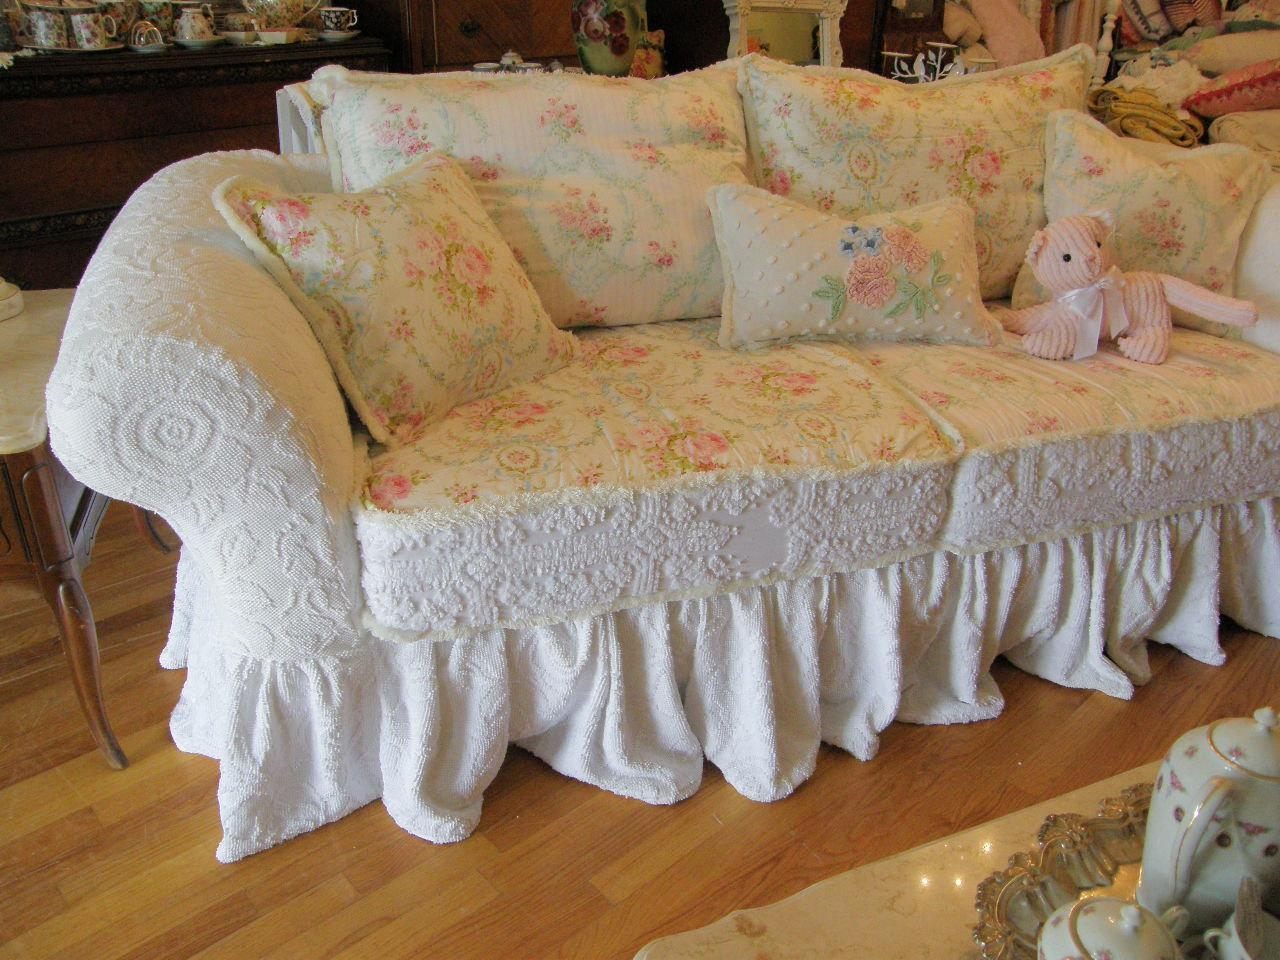 Sofas Center : Marvelous Shabby Chic Sofa Picture Design Countryrs Intended For Shabby Chic Sofas Covers (Image 18 of 20)